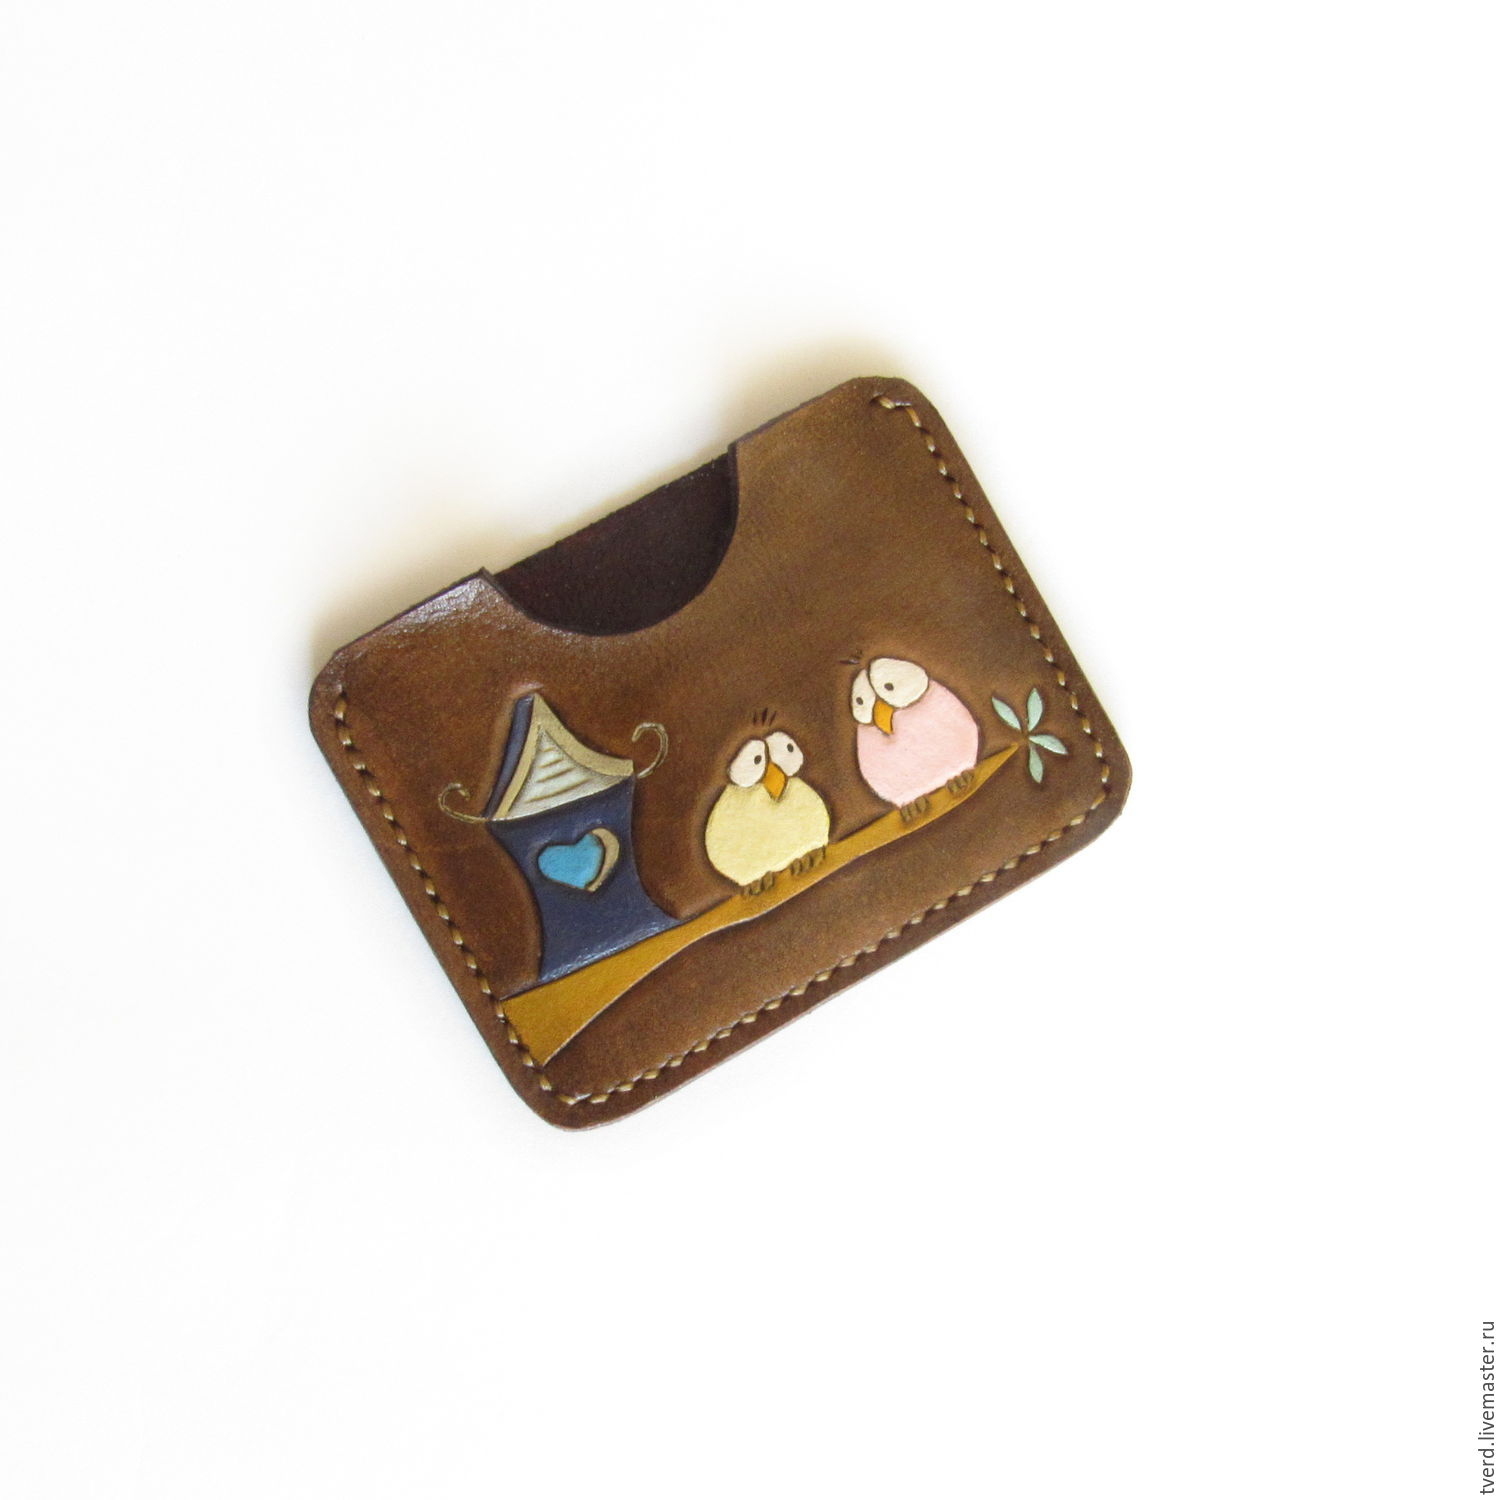 cheaper d42dd 27192 Bifold Cardholder, Leather Wallet, Personalized leather card holder – shop  online on Livemaster with shipping - CH2O3COM | Moscow